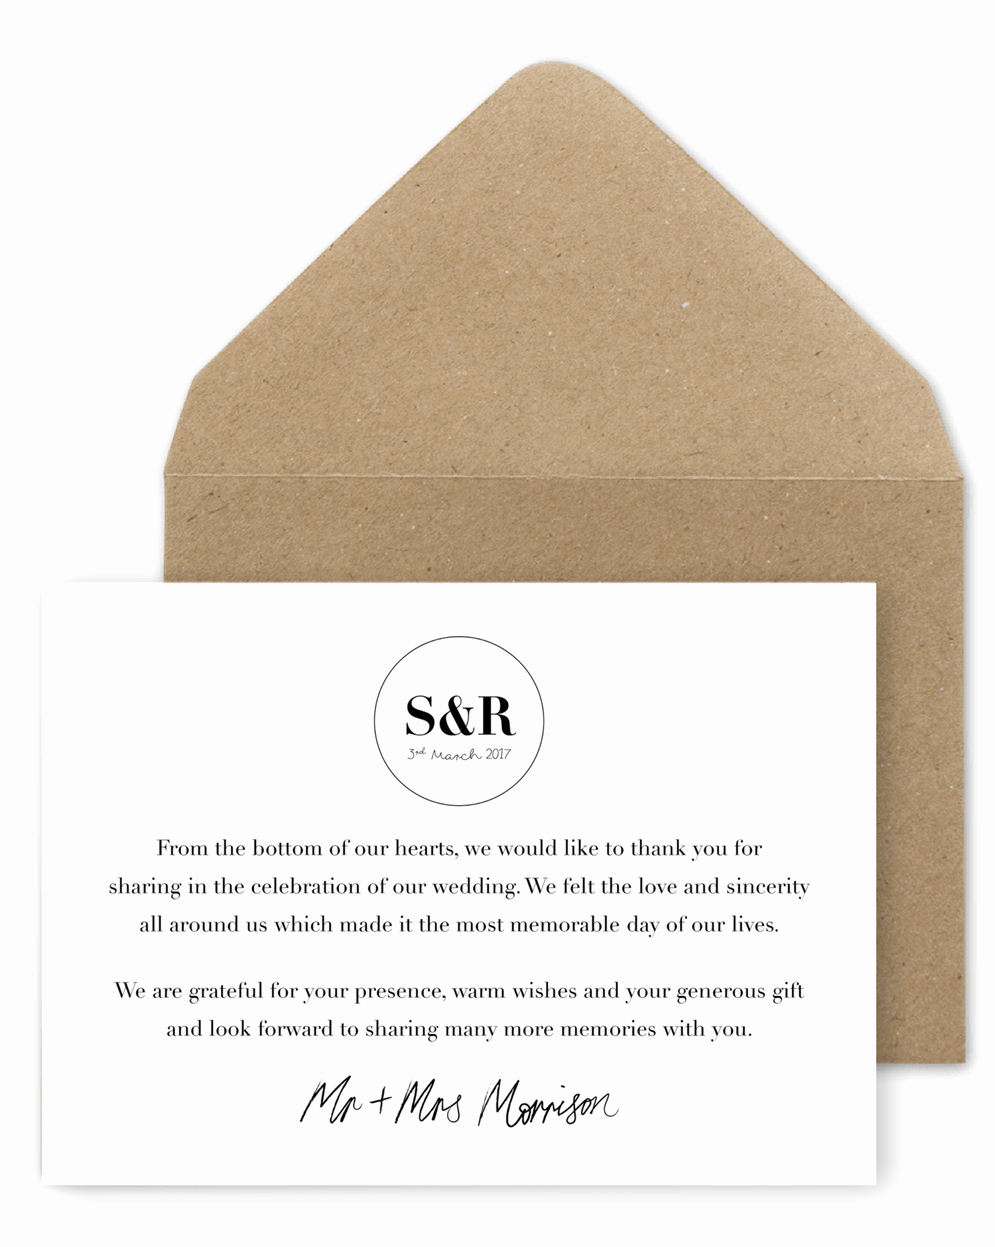 Words for Thank You Card Beautiful 5 Wording Ideas for Your Wedding Thank You Cards – for the